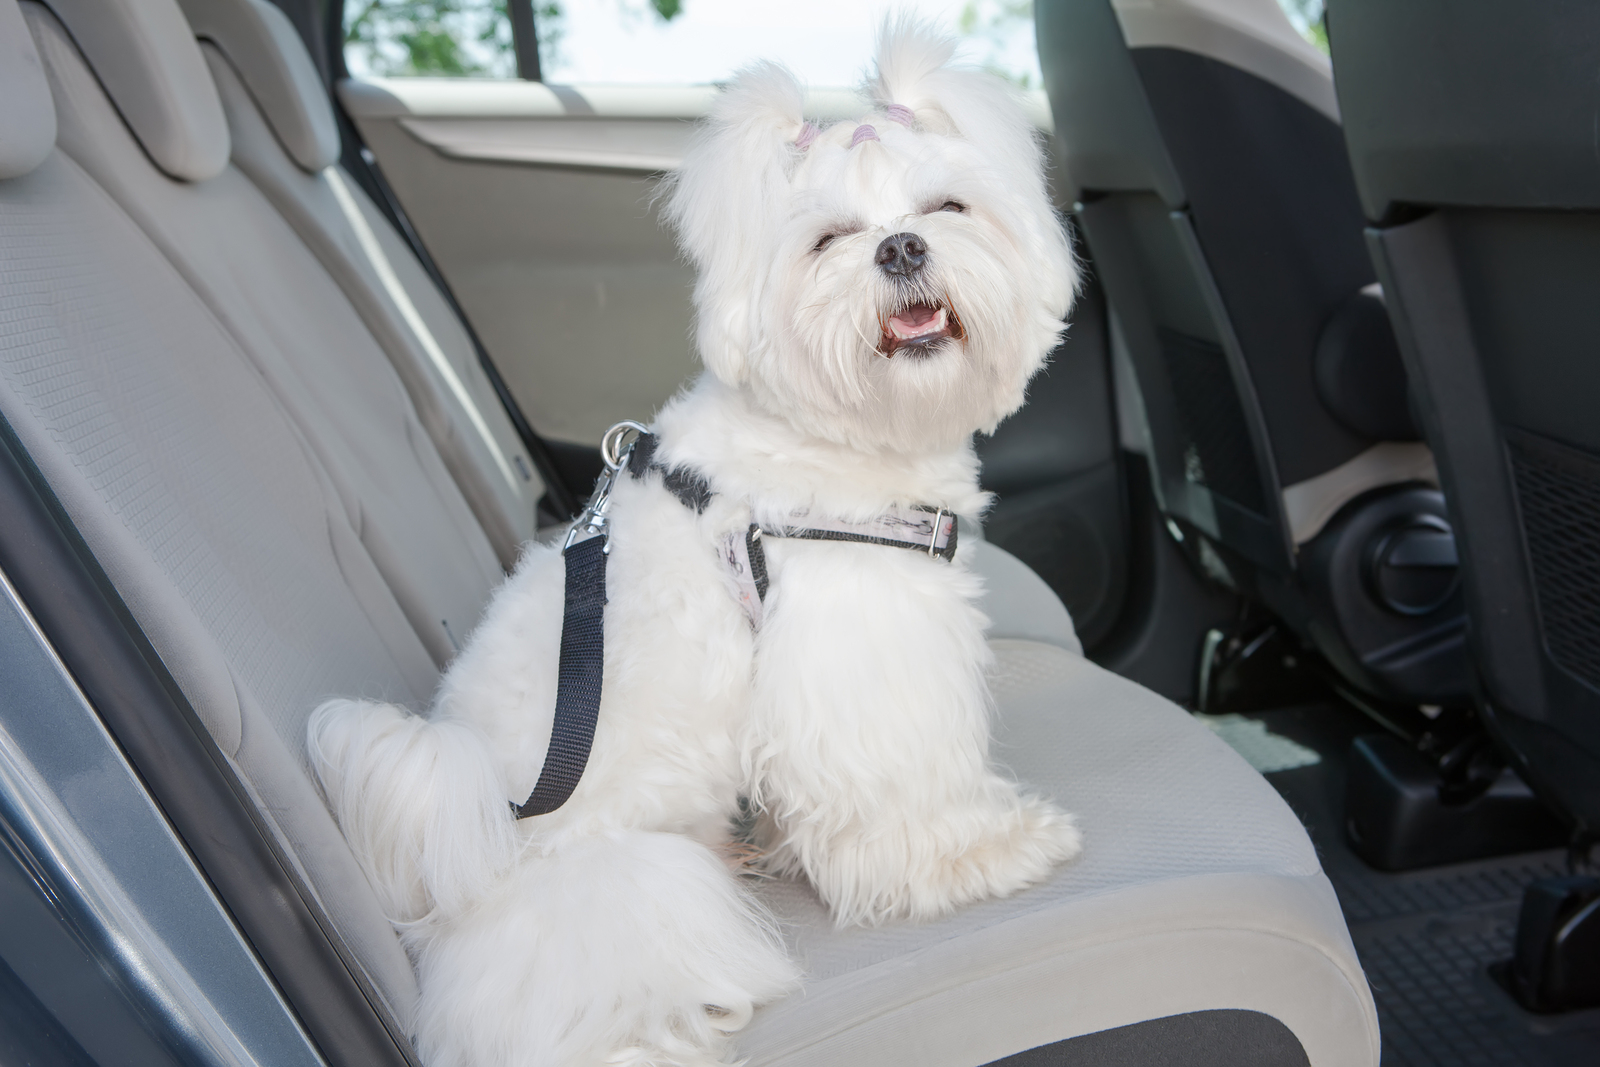 Animal Cruelty Seat Belt Safety - New Jersey SPCA Backtracks on Animal Restraint Enforcement